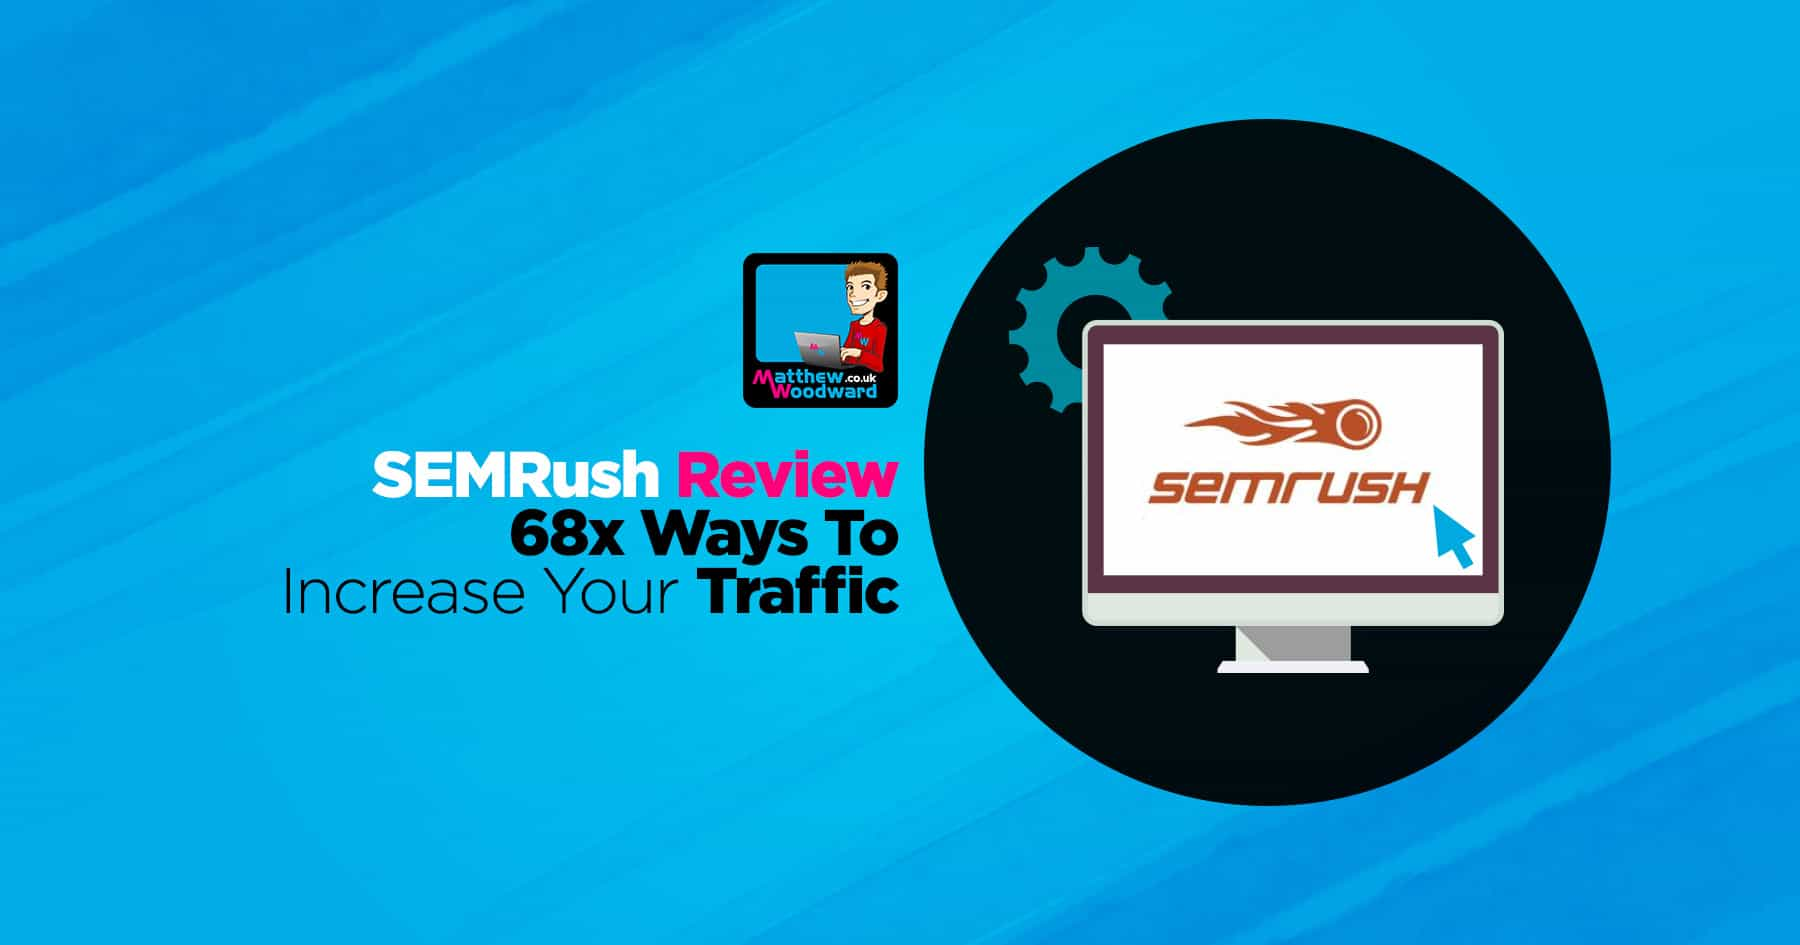 Seo Software Semrush  Free No Survey